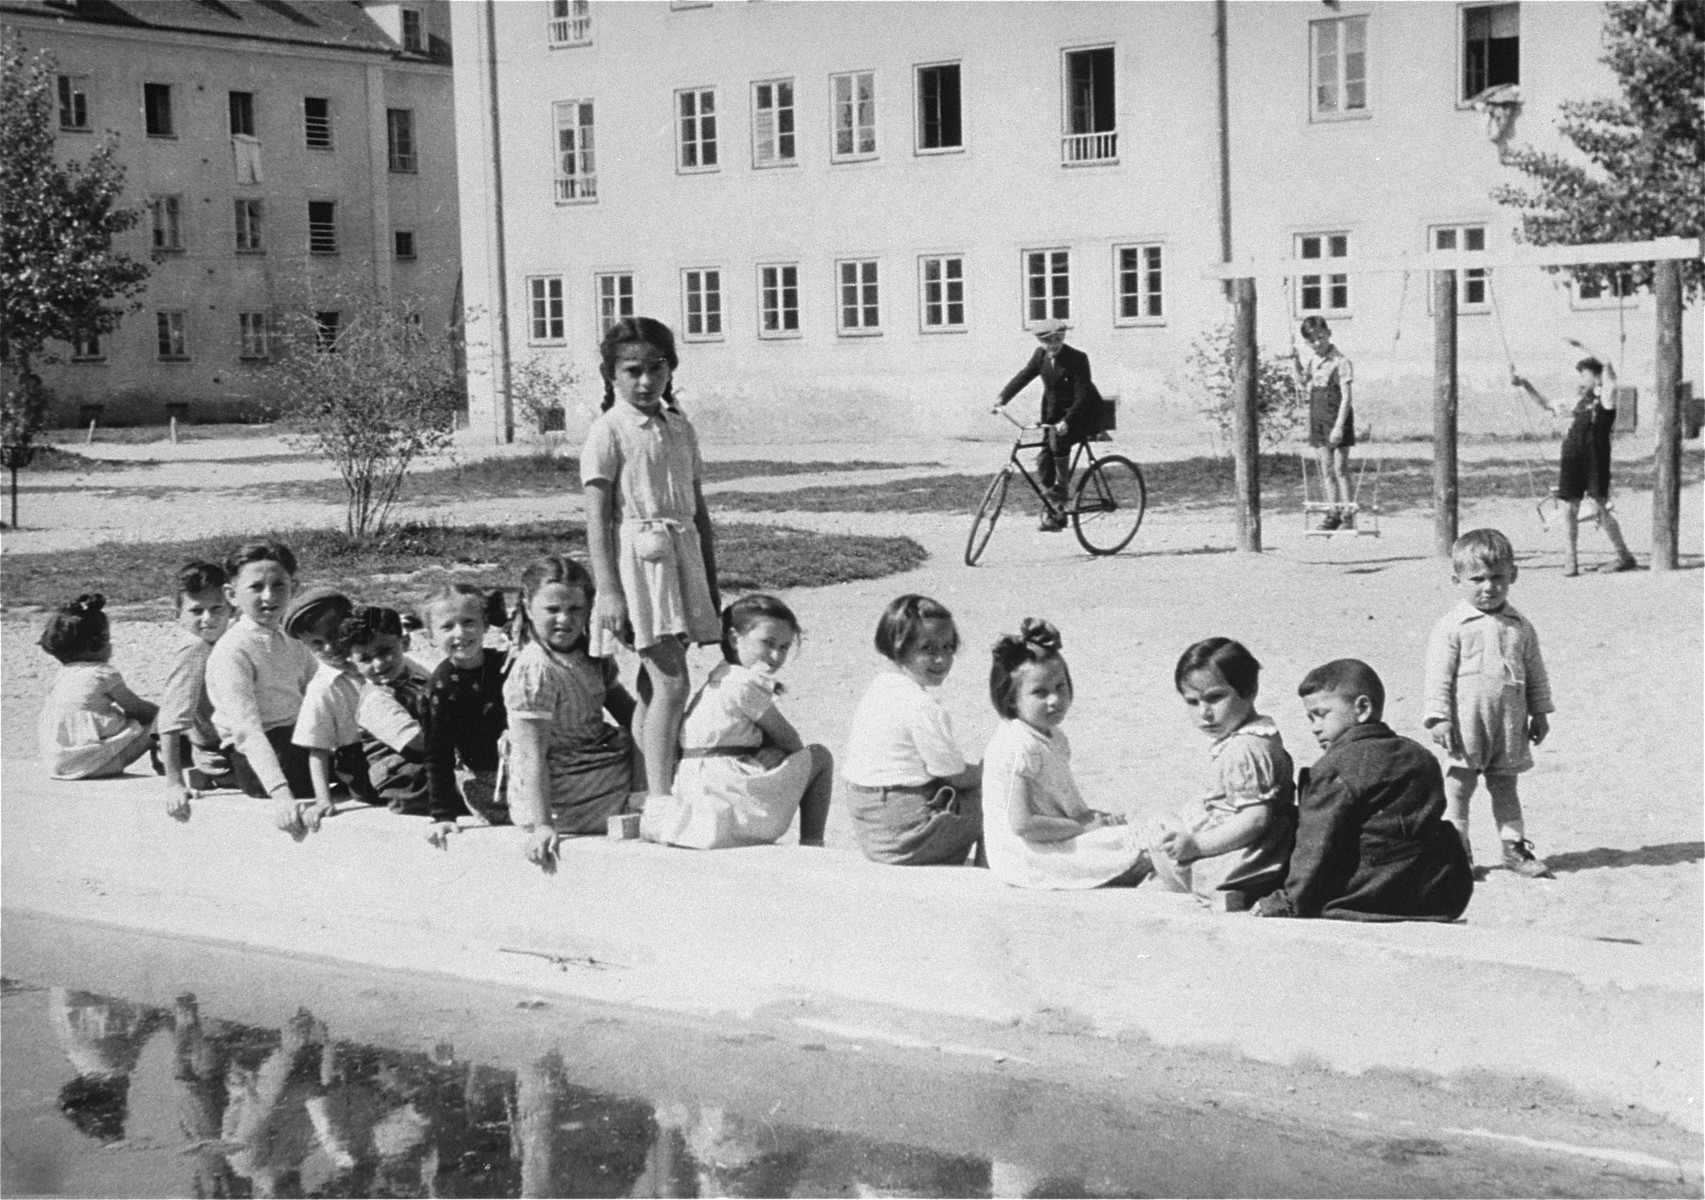 DP children on the playground in the Bindermichl DP camp.    The first name of the girl standing in the center is Gittela (last name unknown).  The seated child directly to the left of the standing girl is Fayge Katz  (later Frances Schwartz).  She was born in Trochenbrod to Sara (Szames) Katz.  Sara later married Chaim Fisgeyer, while in Bindermichl, and they had a daughter named Mona.